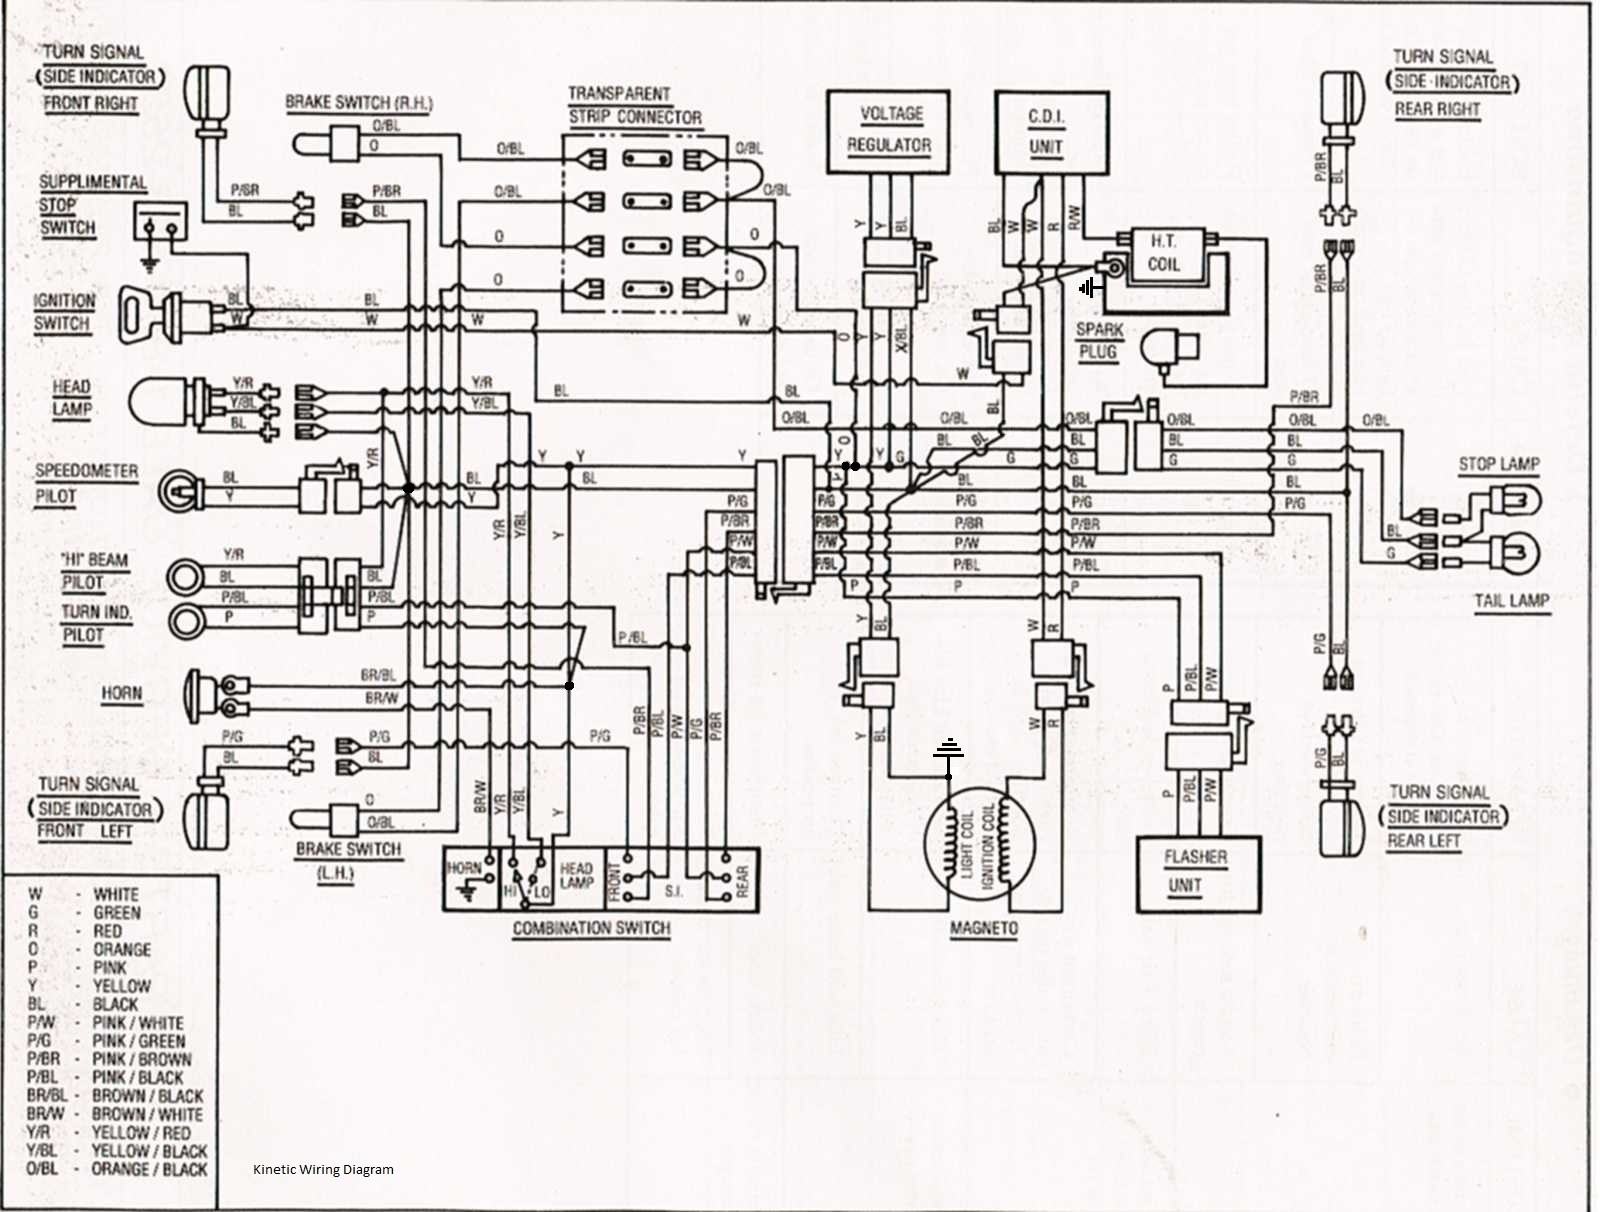 kinetic wiring diagram moped wiki